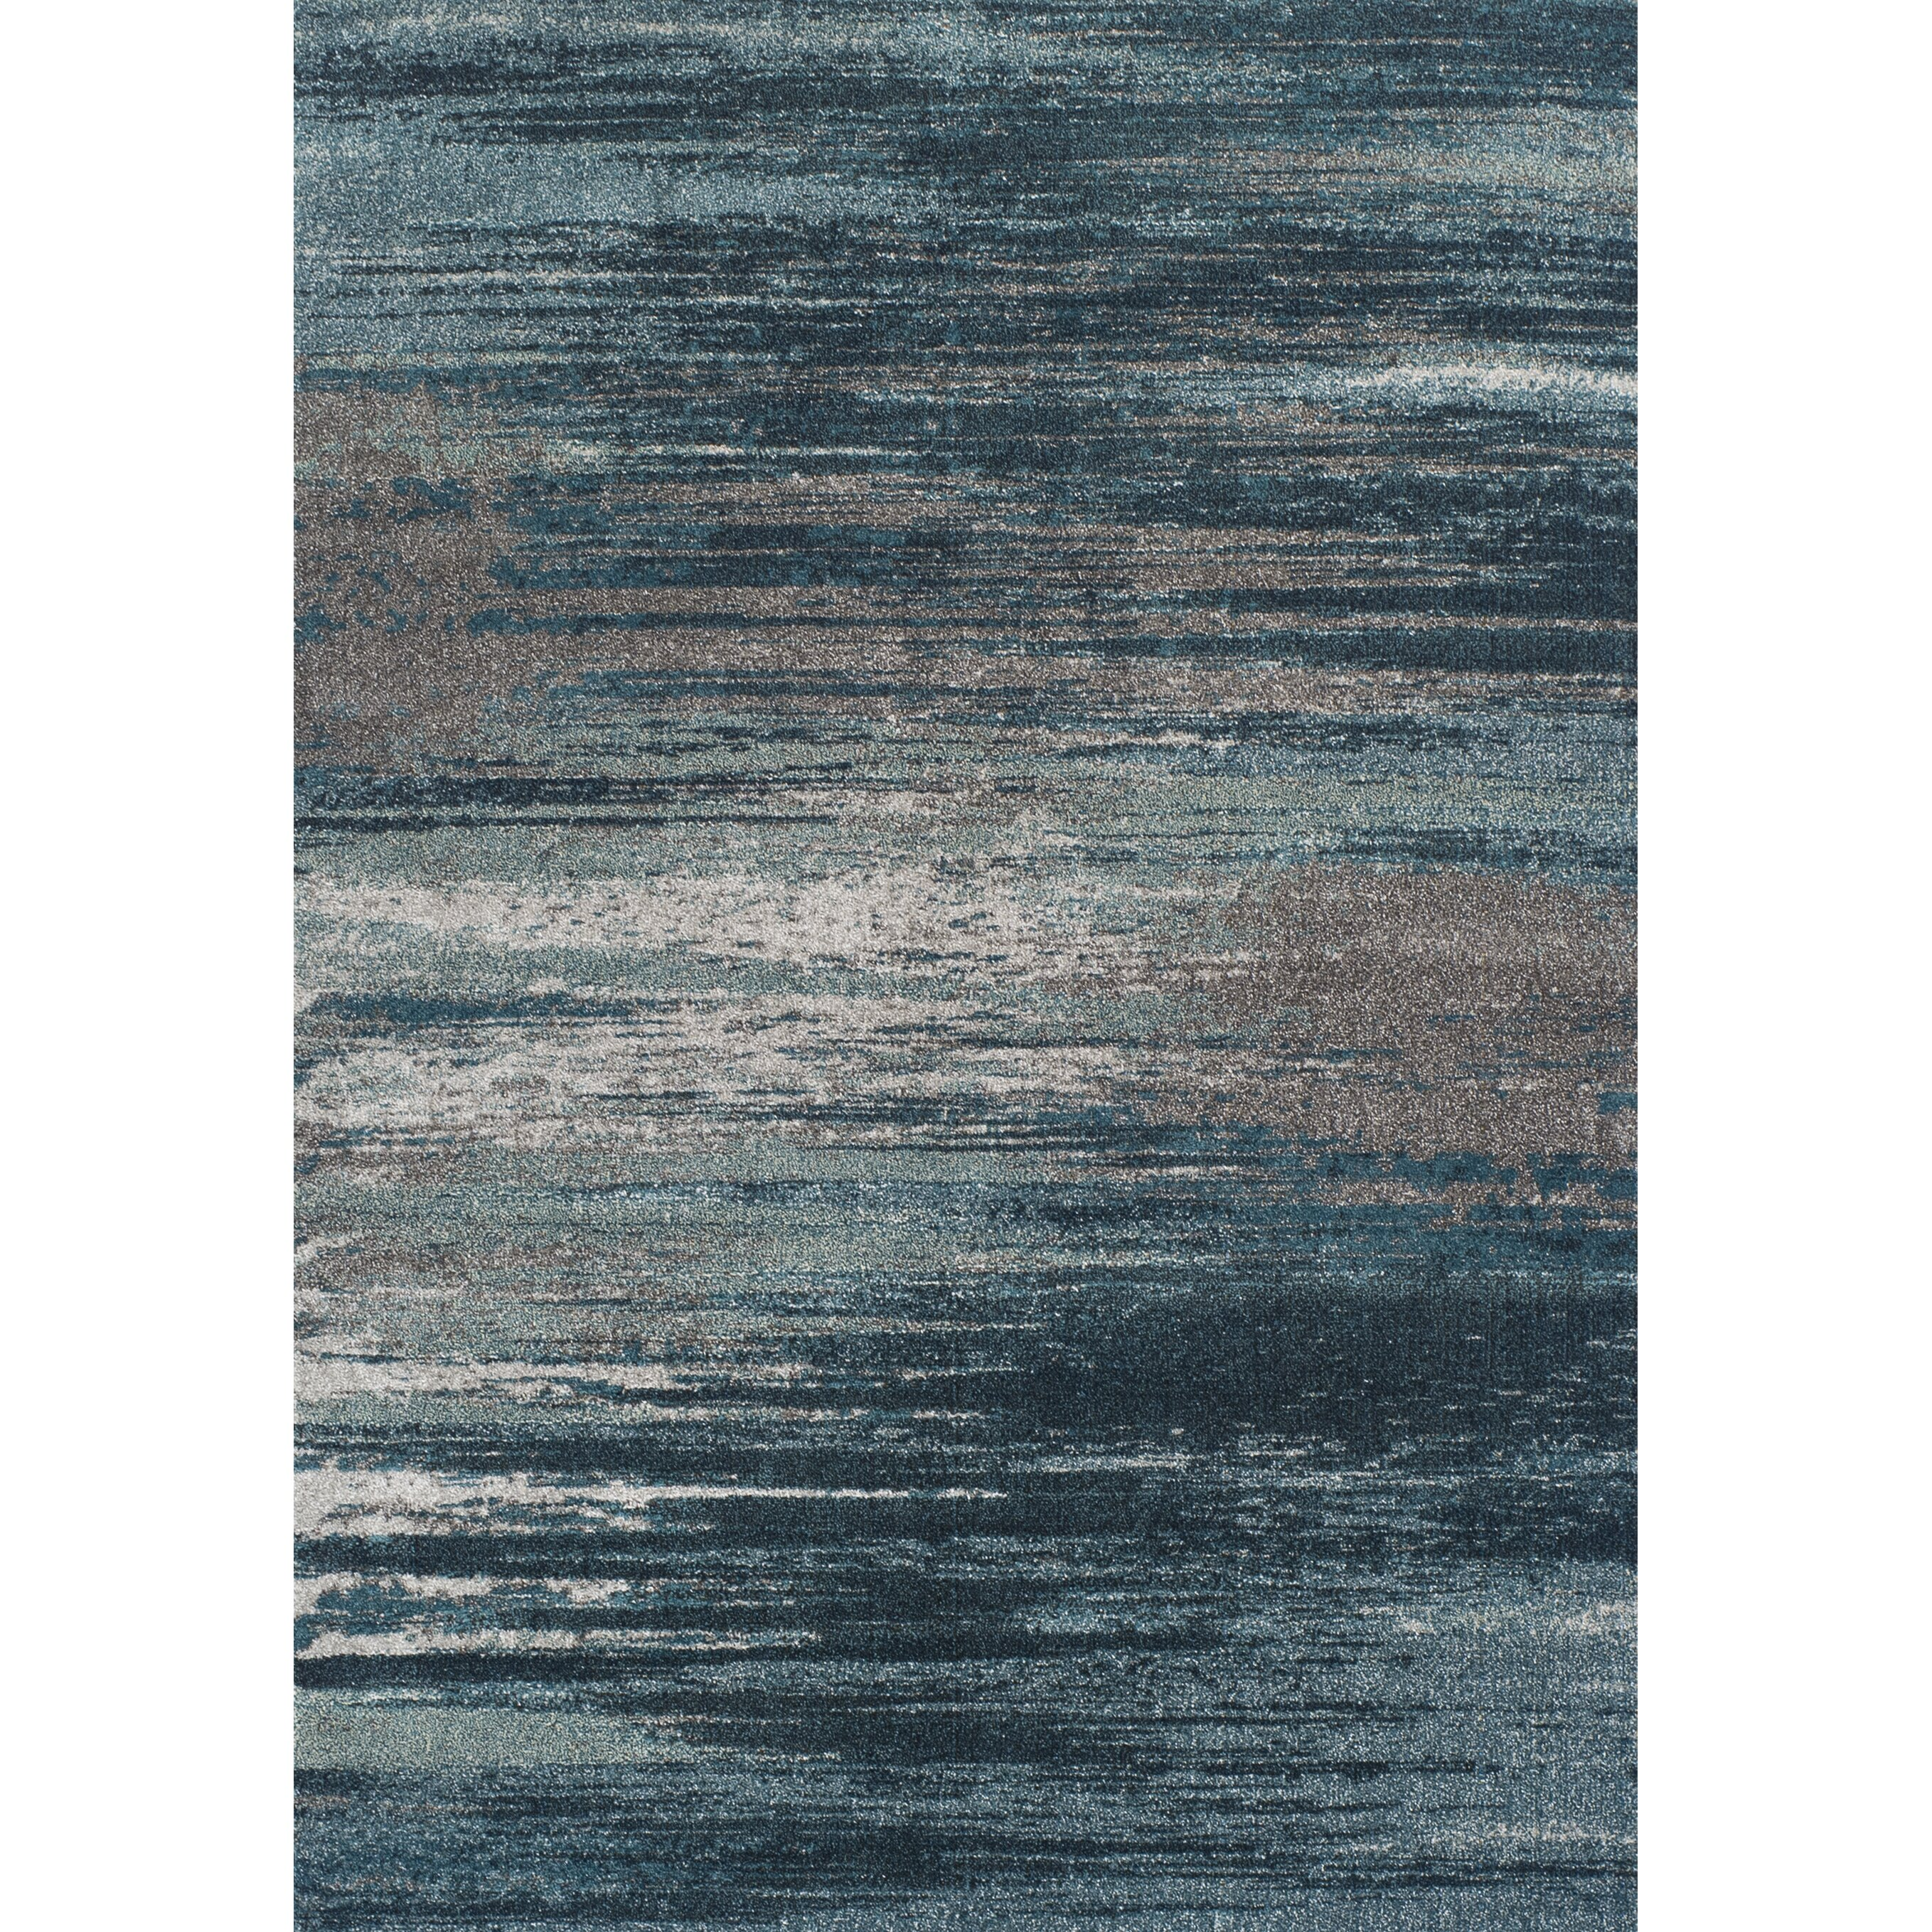 Dalyn Rug Co Modern Greys Teal Area Rug Amp Reviews Wayfair